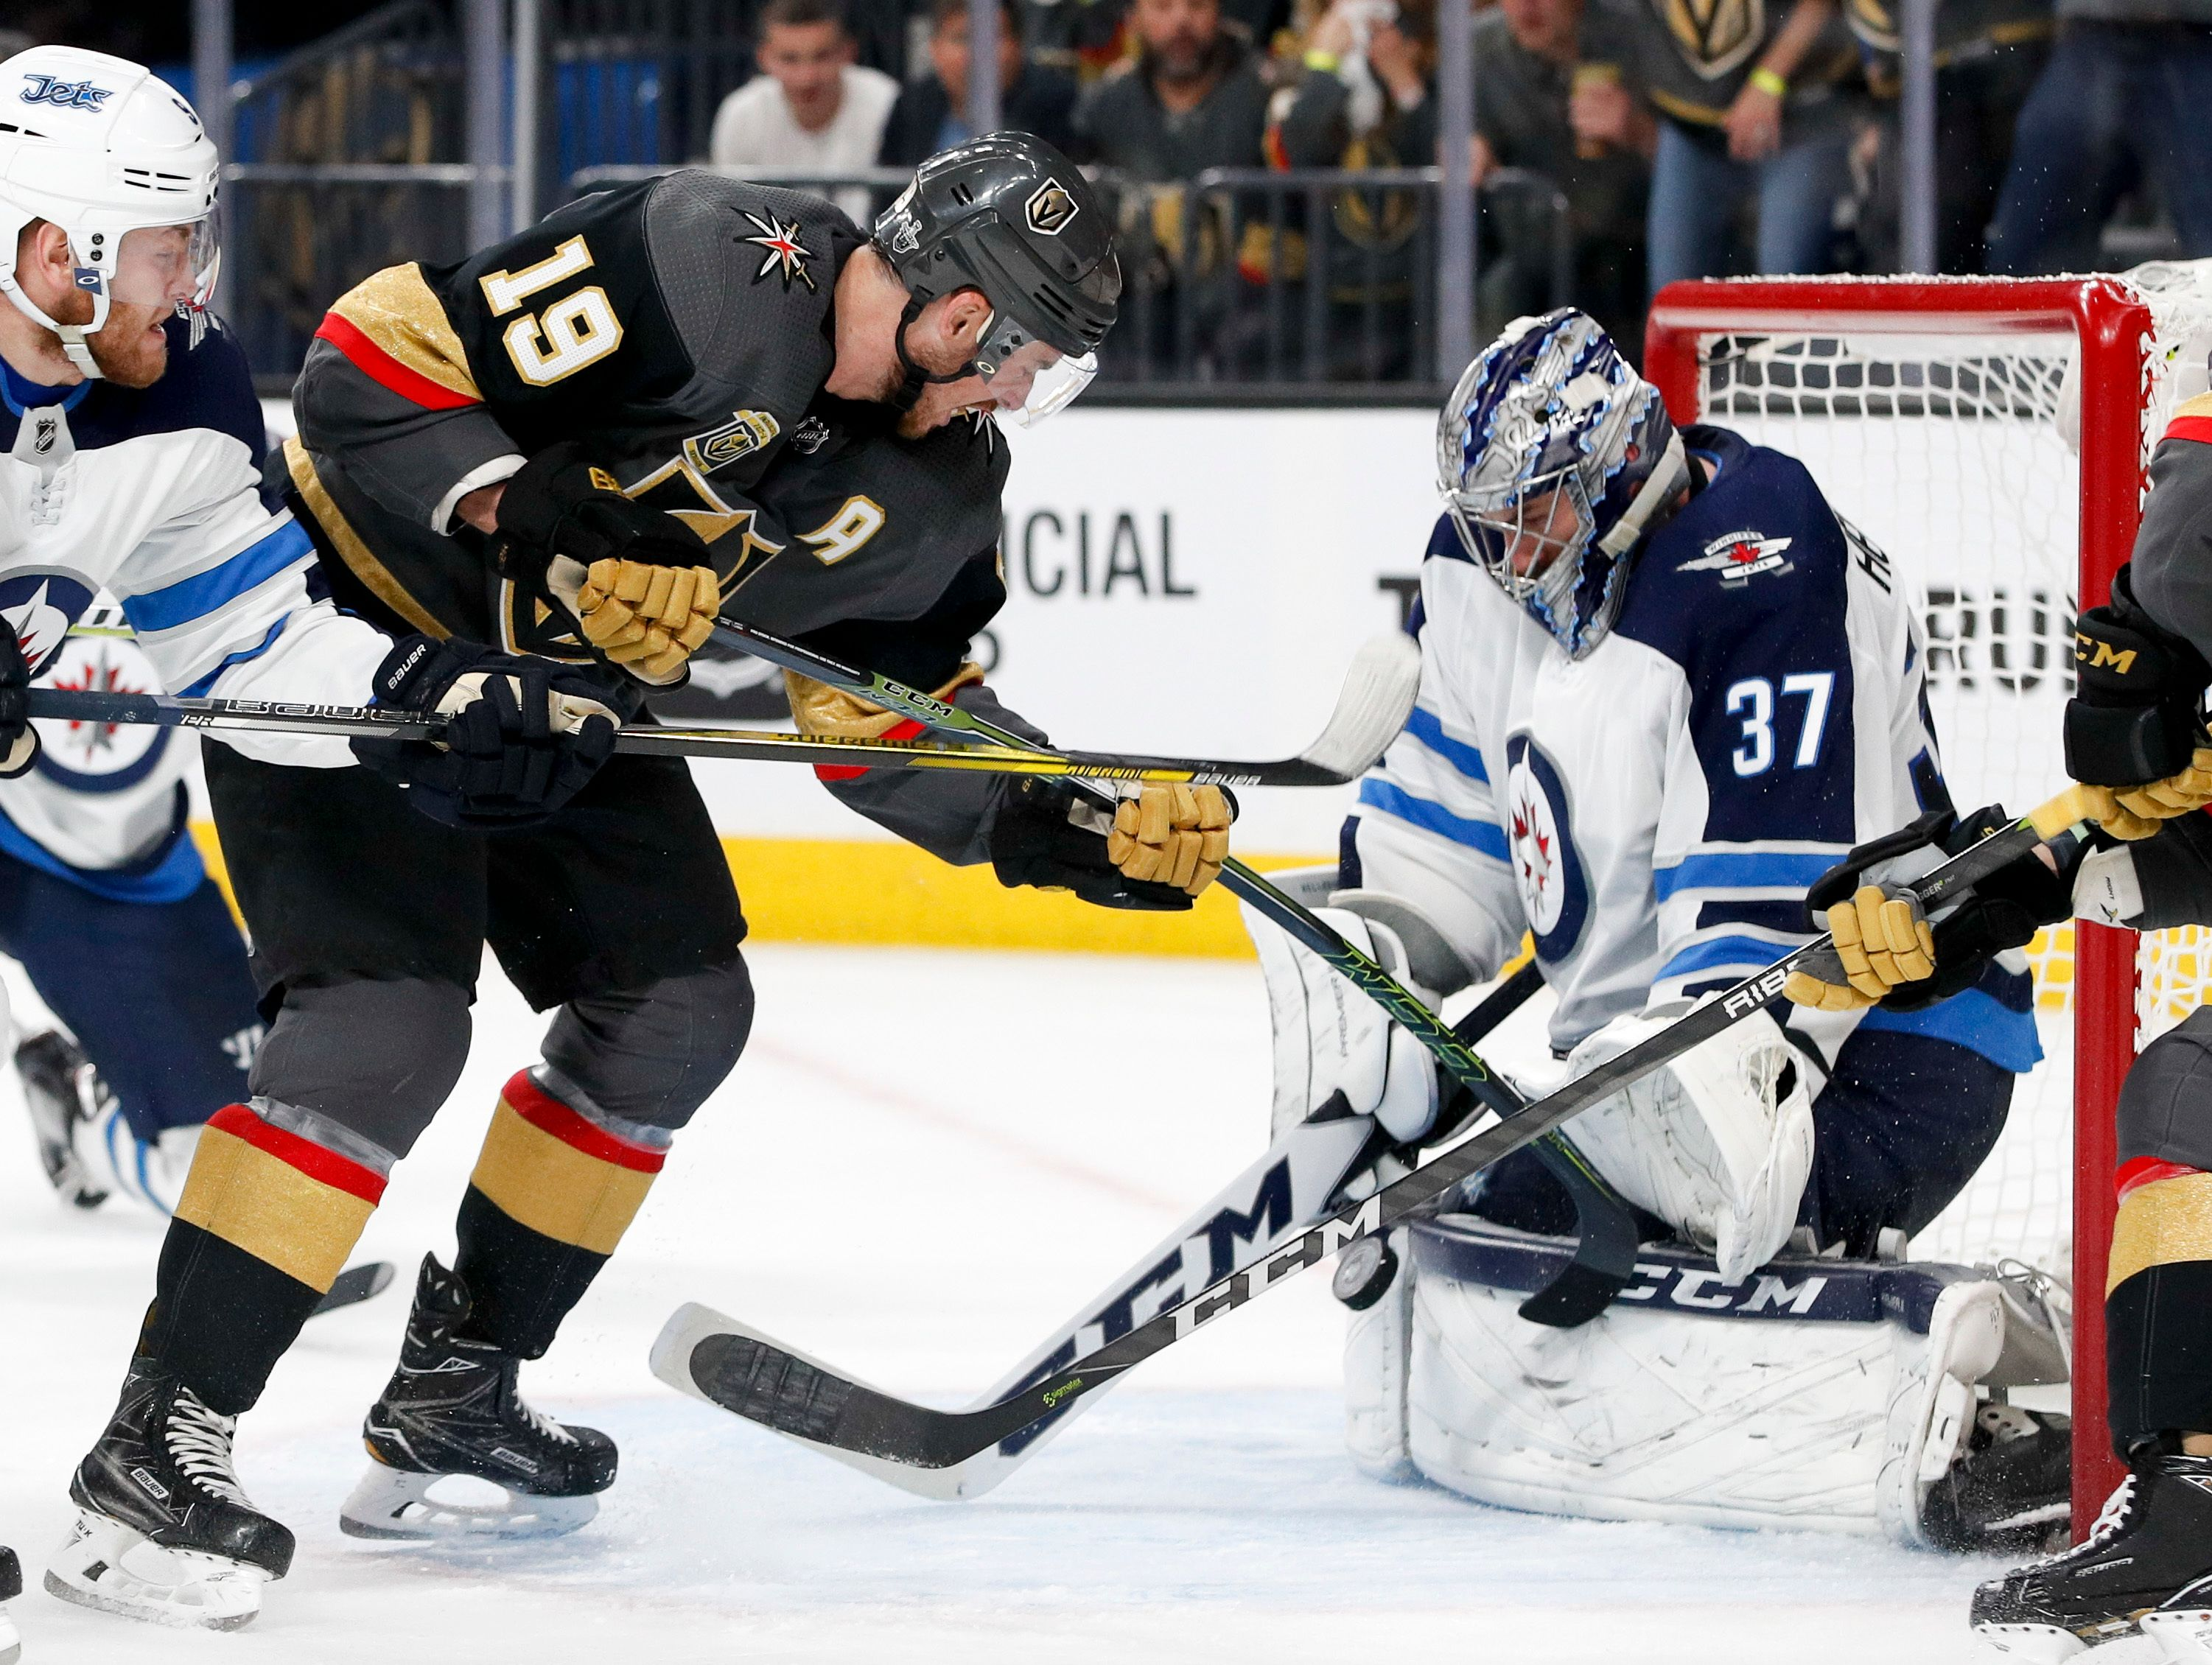 Marchessault scores twice, Golden Knights top Jets 4-2